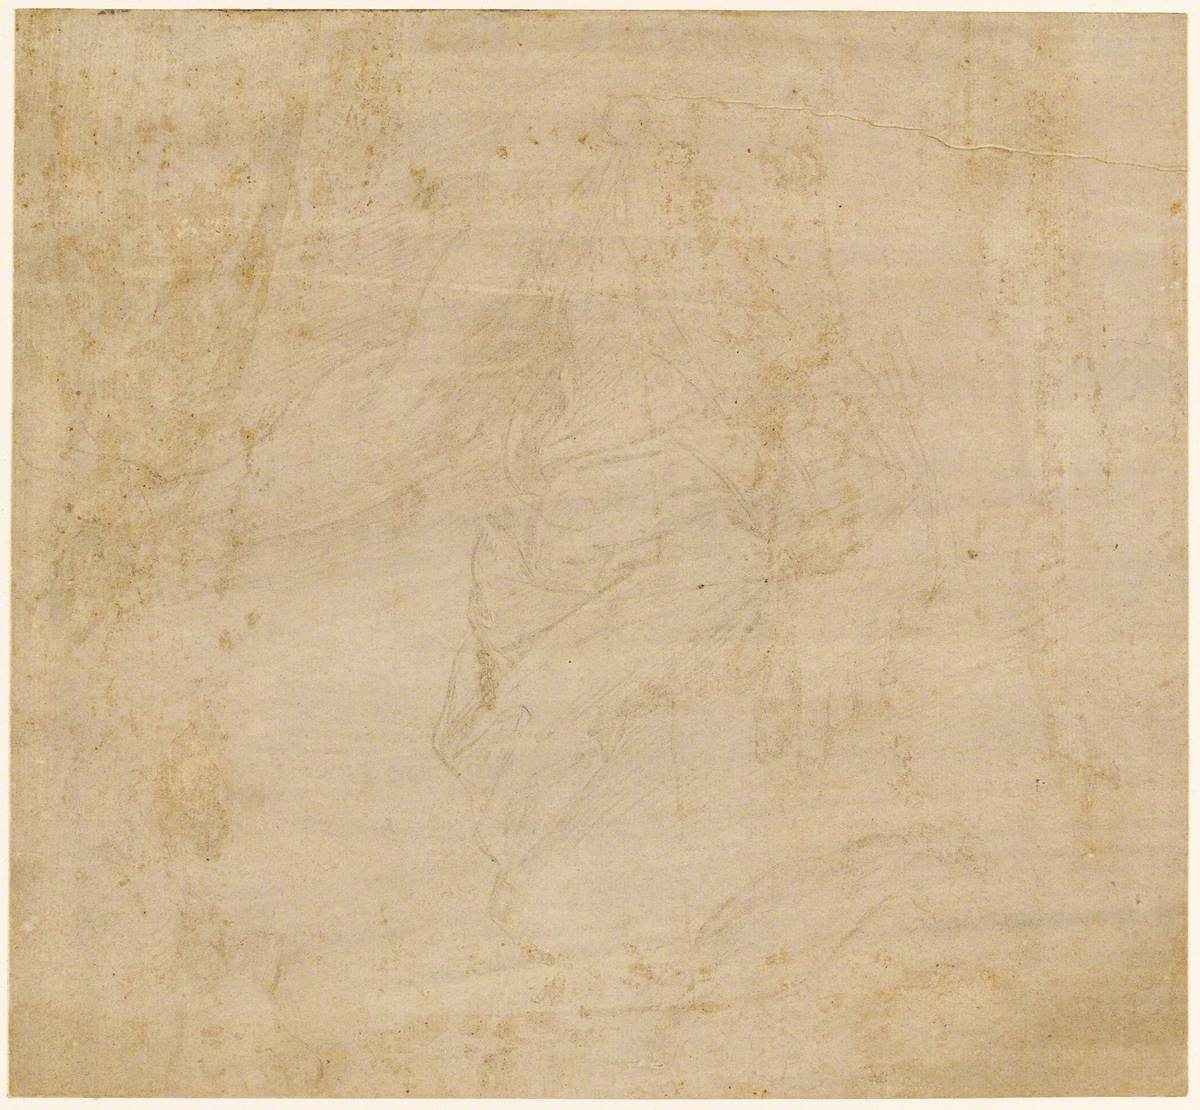 Sheet of Studies – Drapery with a Bare Arm and a Separate Study of a Foot and Drapery